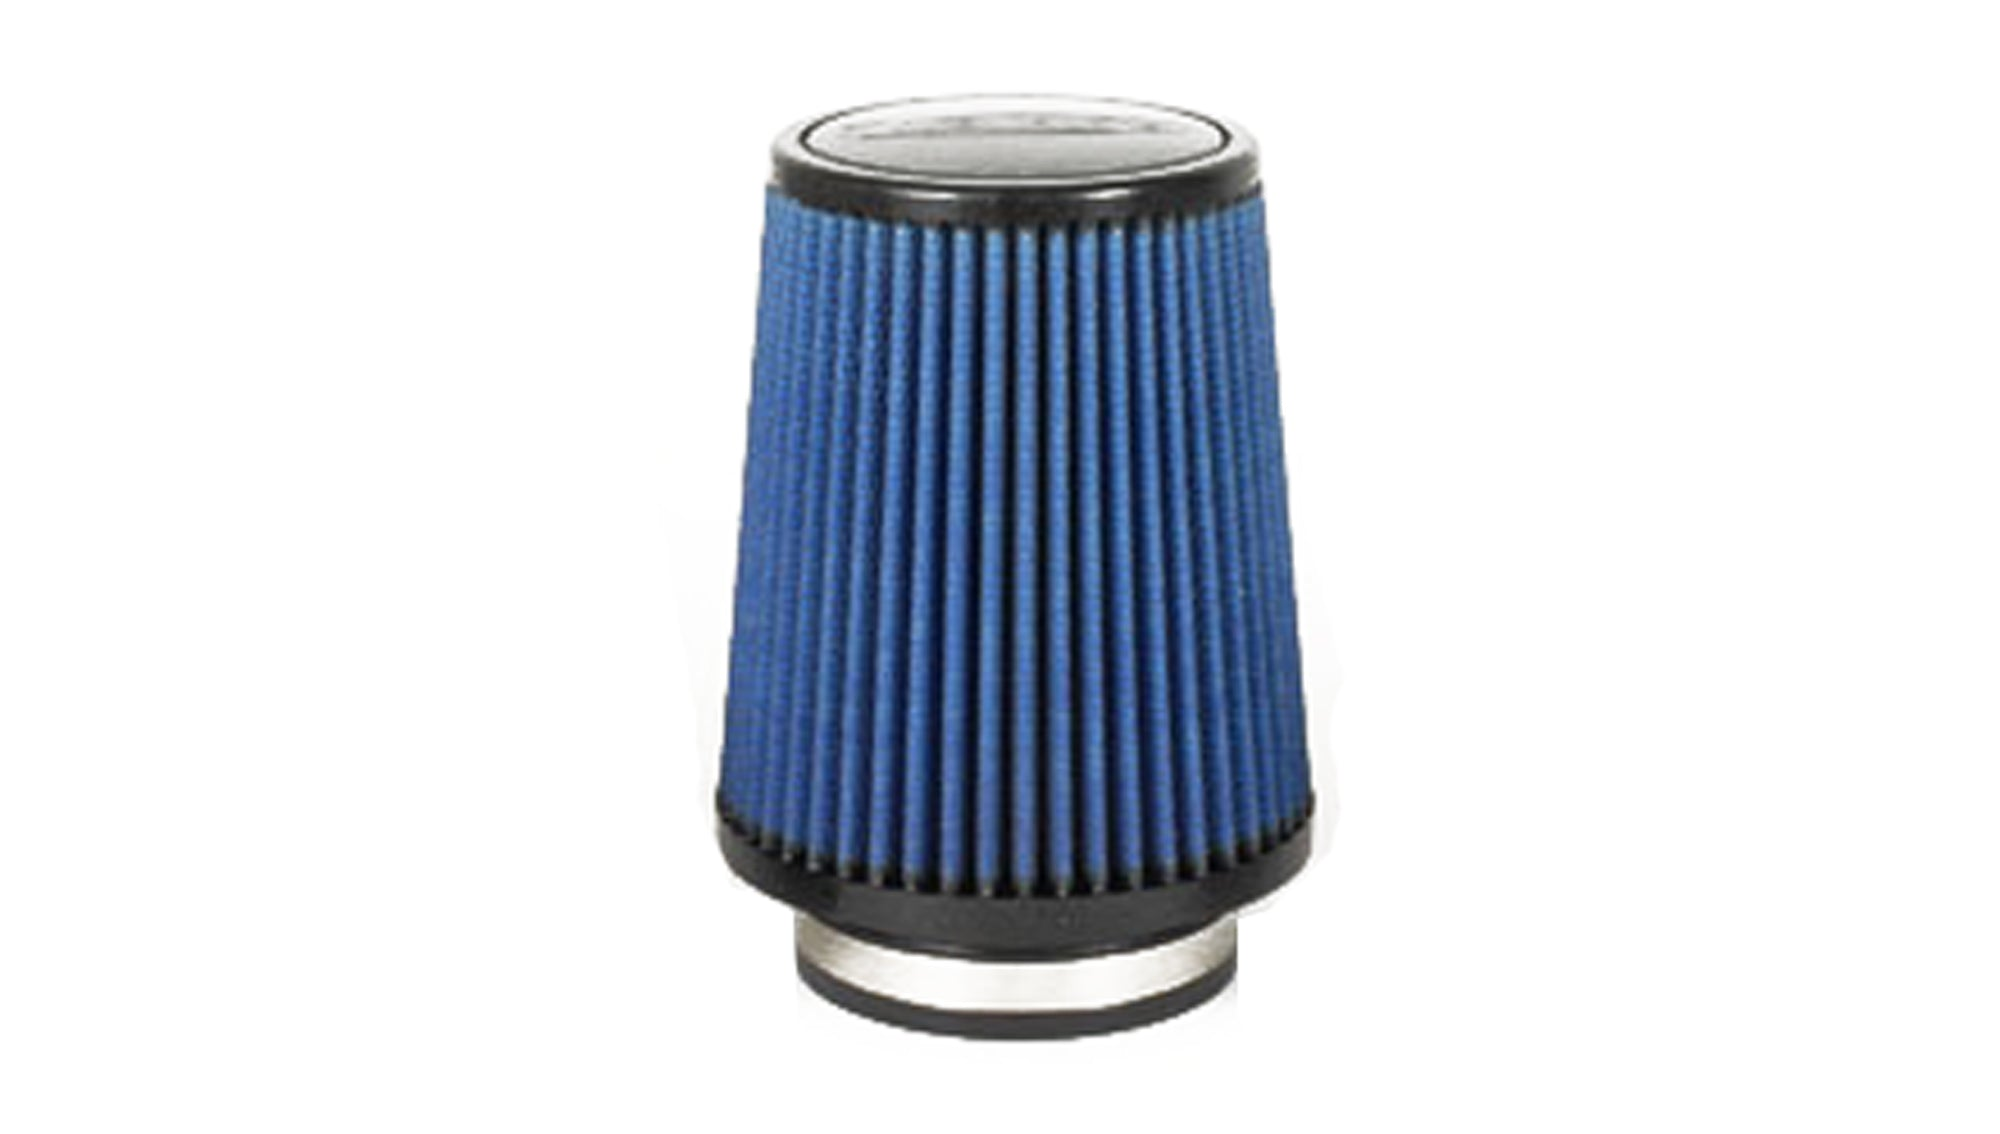 2005-2008 Chevrolet Trailblazer Oiled Filter - 5111